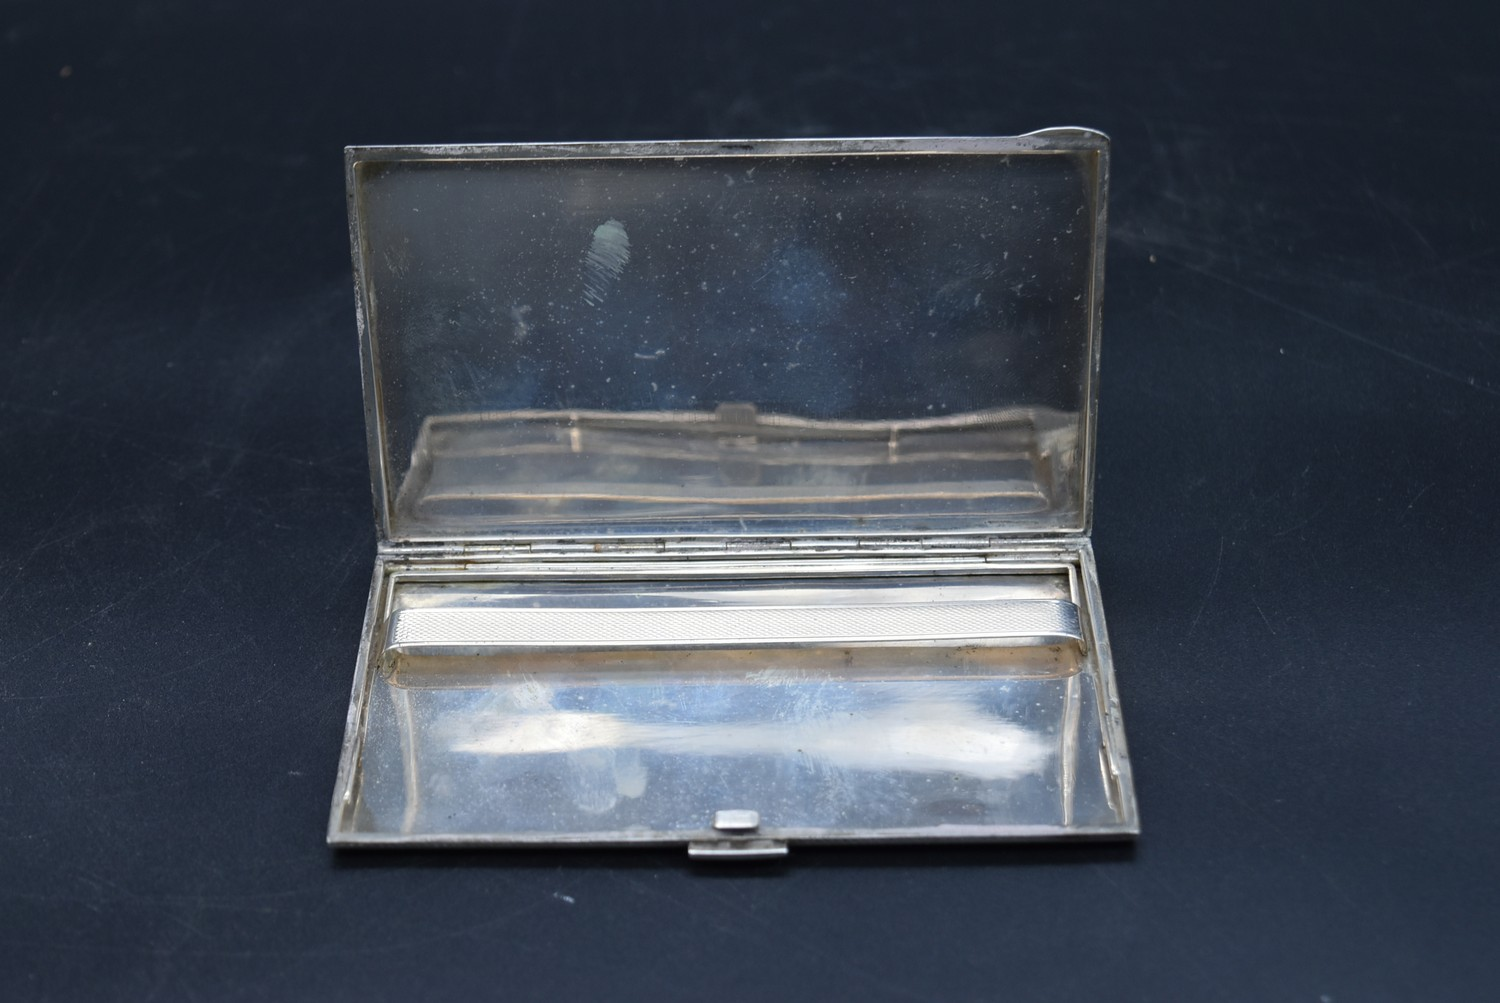 A Continental silver cigarette case with maker's stamp, marked 800, L.13.5 W.8.5cm, weight 166g - Image 3 of 5